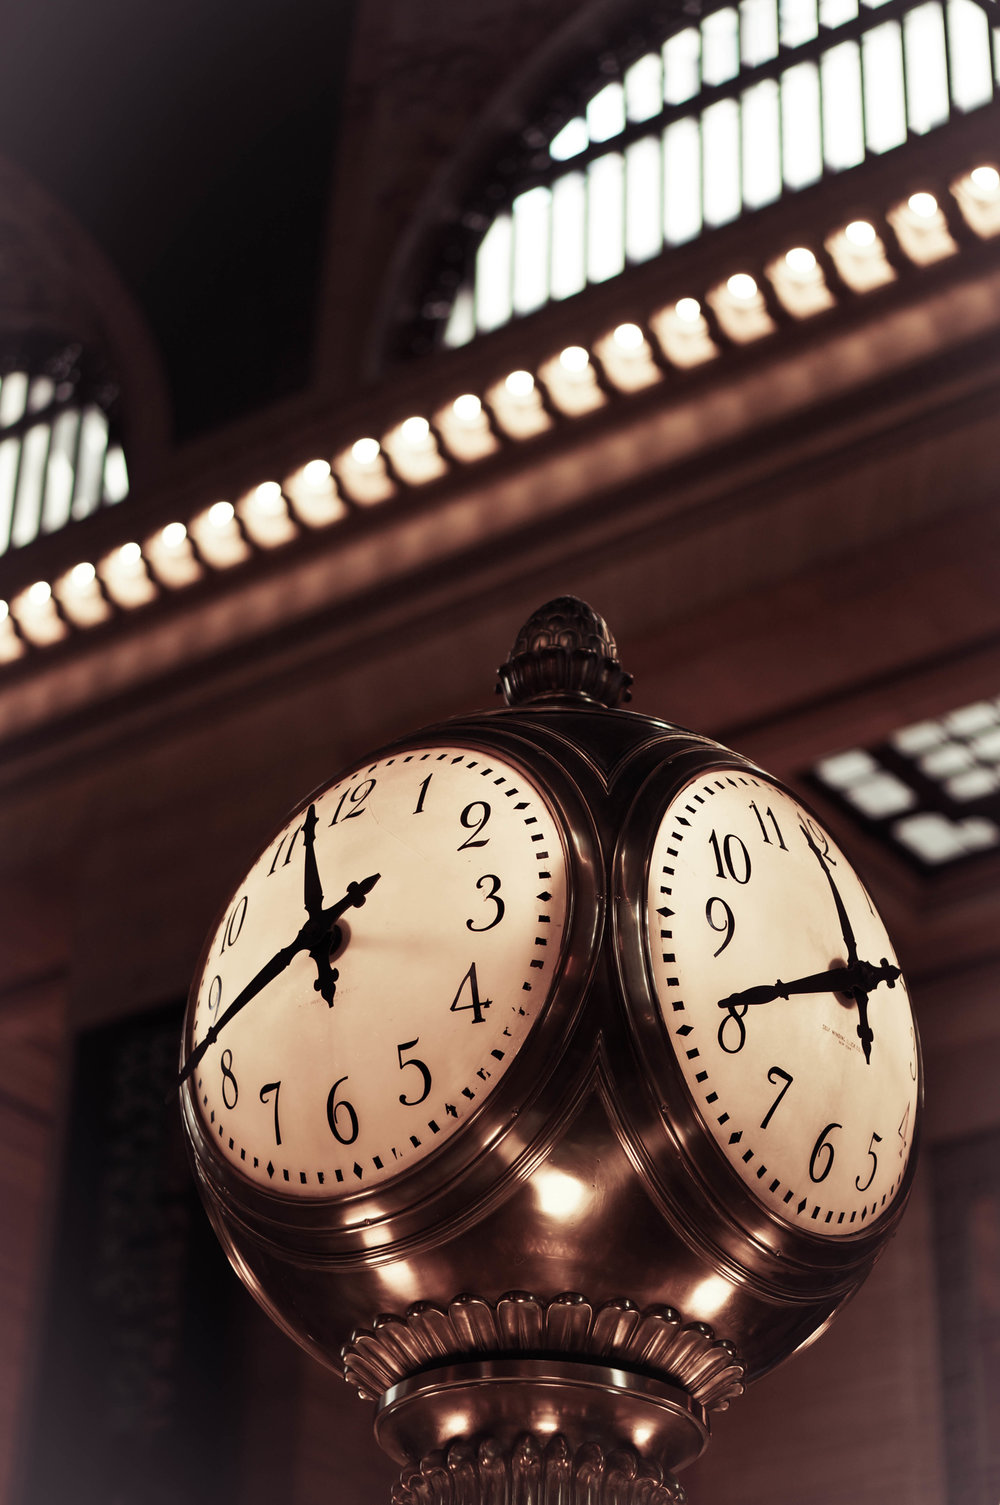 The clock in the centre of the station.